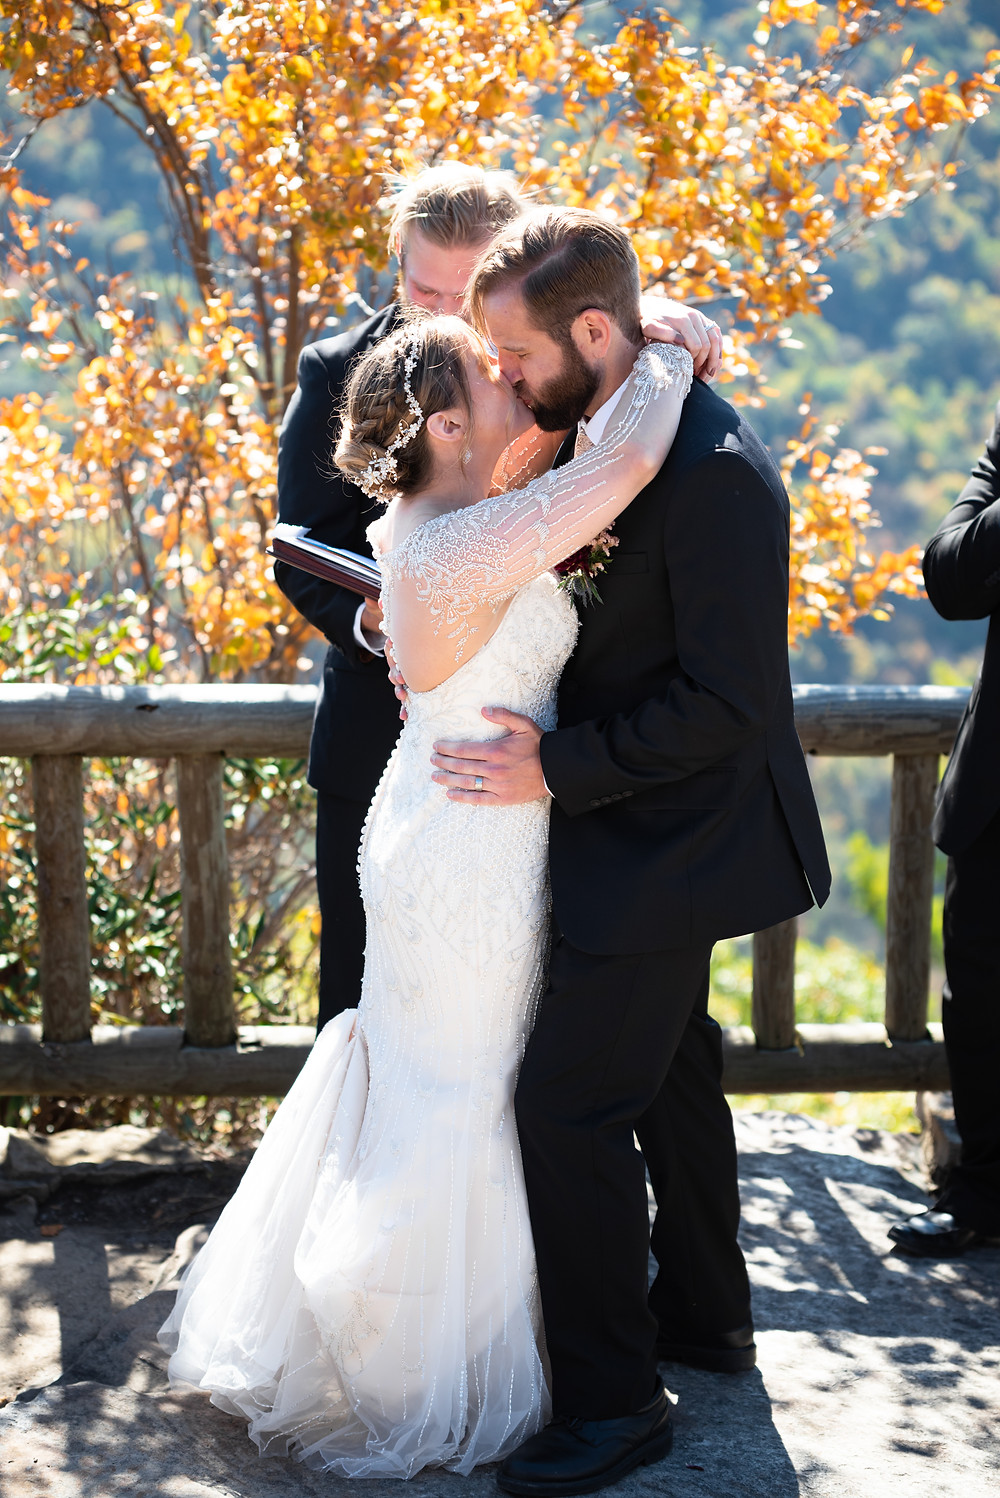 First kiss as husband and wife at Coopers Rock Overlook